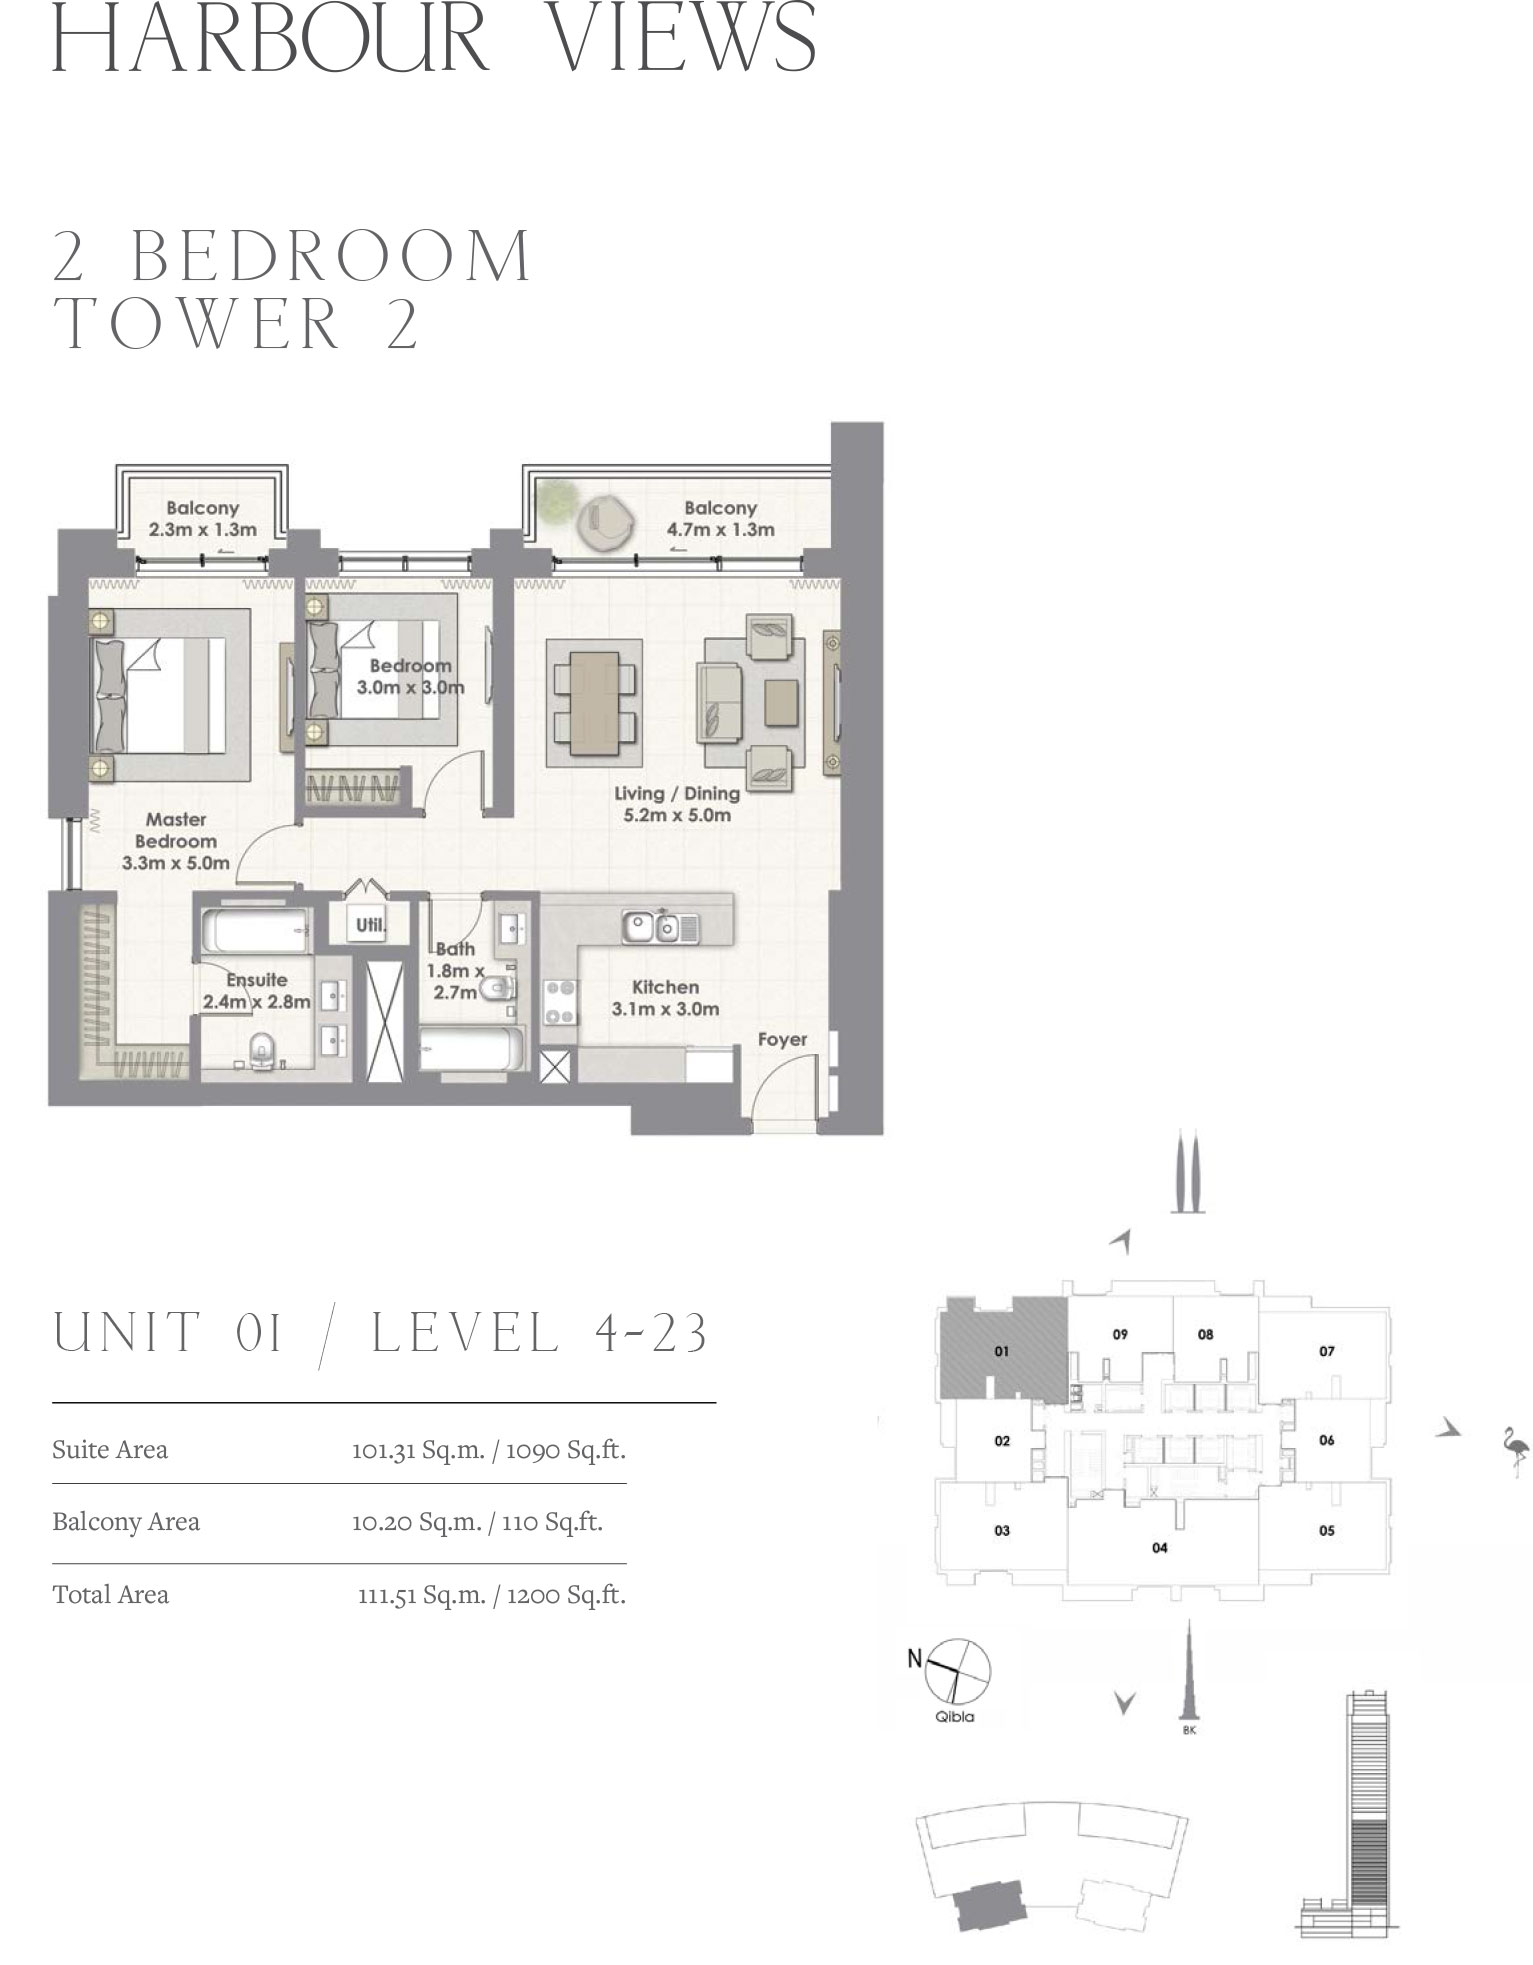 2 Bedroom Tower 2, Unit 01/Level 4-23